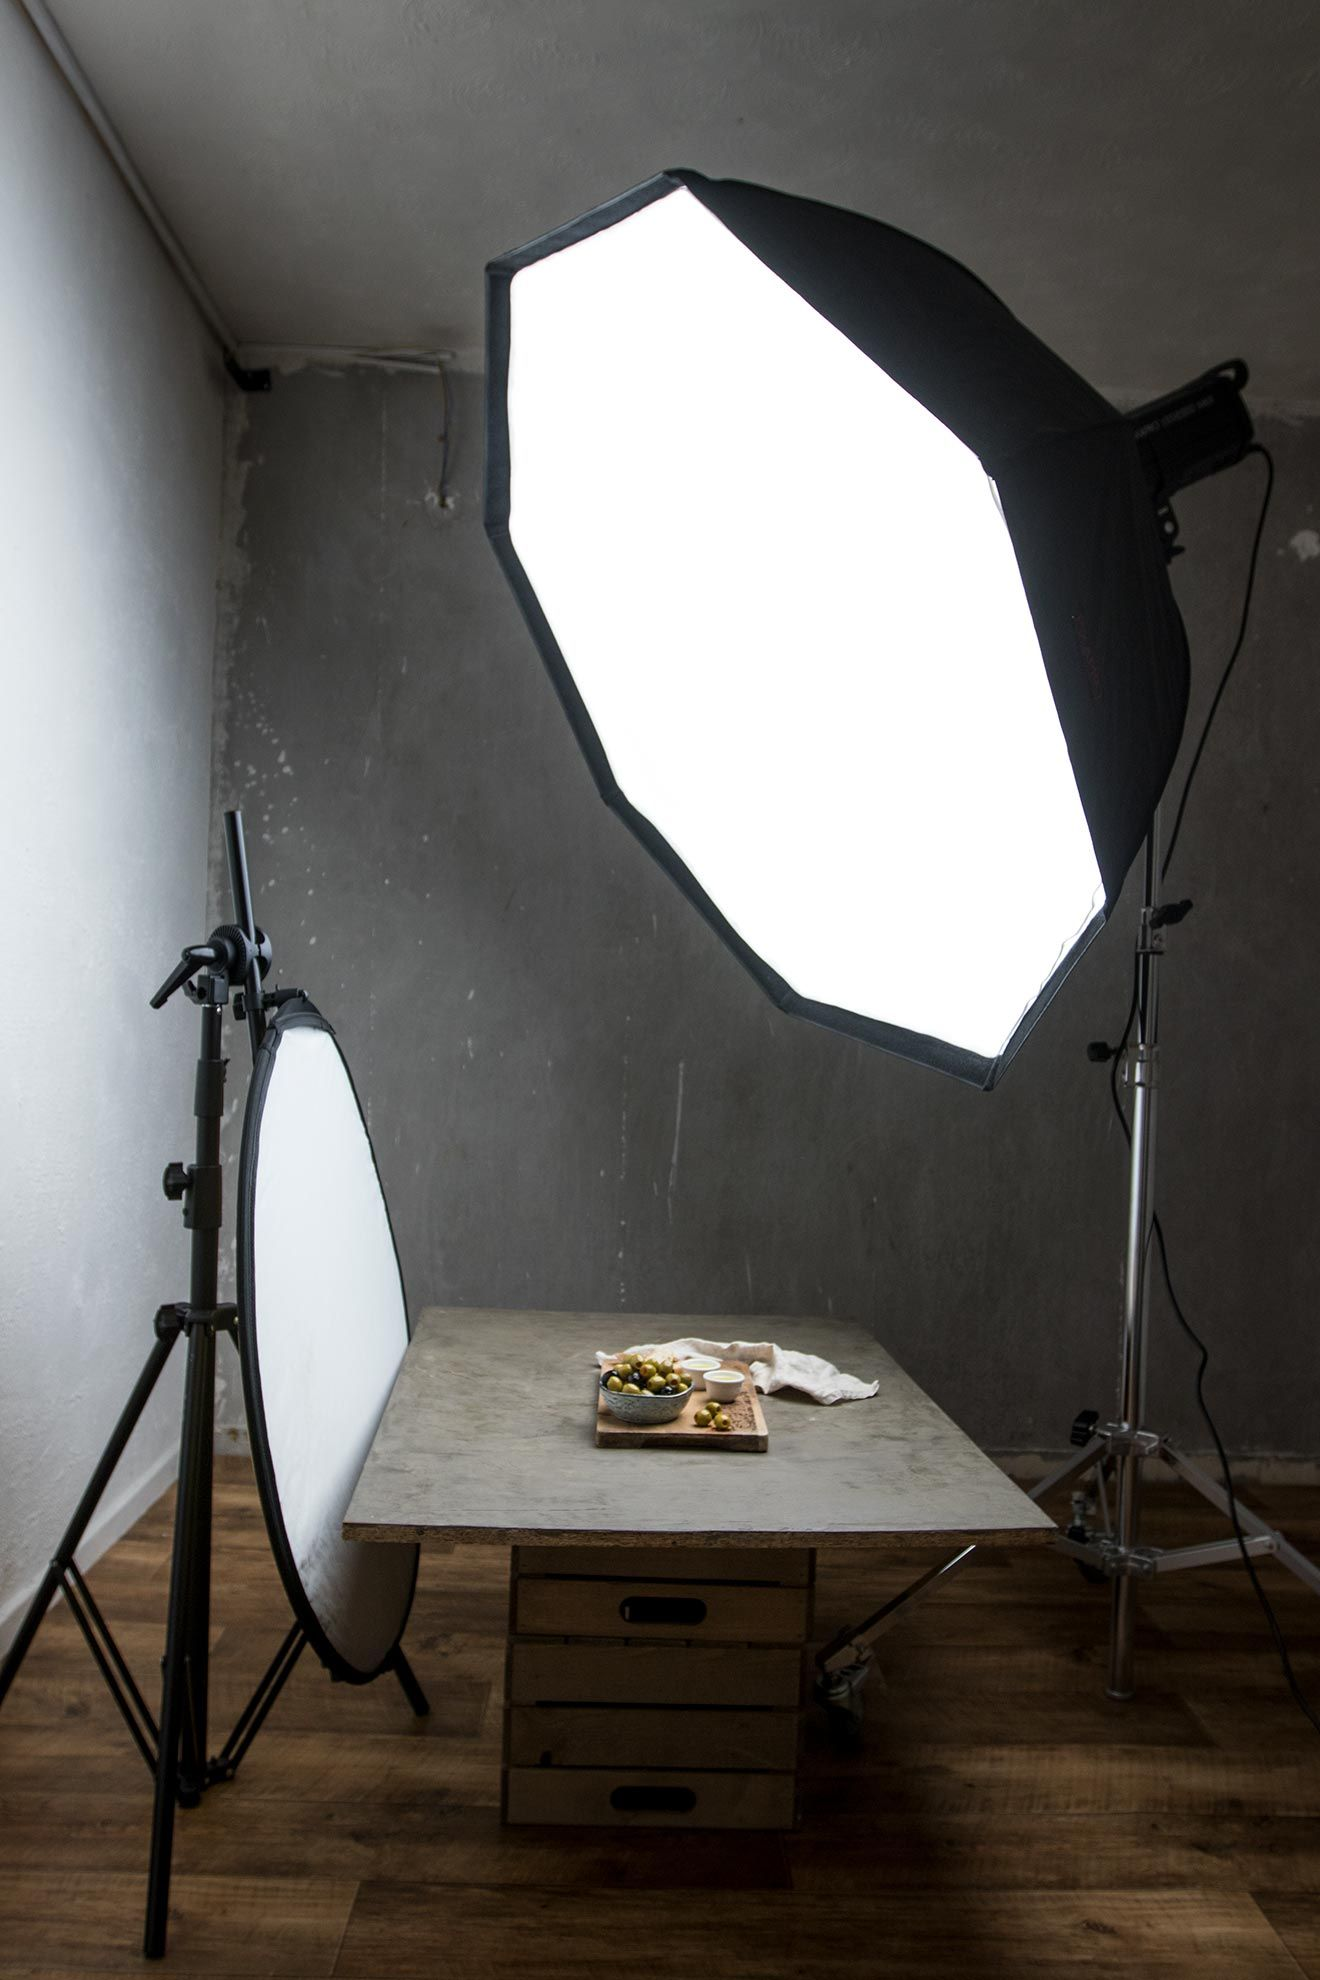 Produktfotografie Beleuchtung The Simple Artificial Lighting Setups I Use For Killer Food